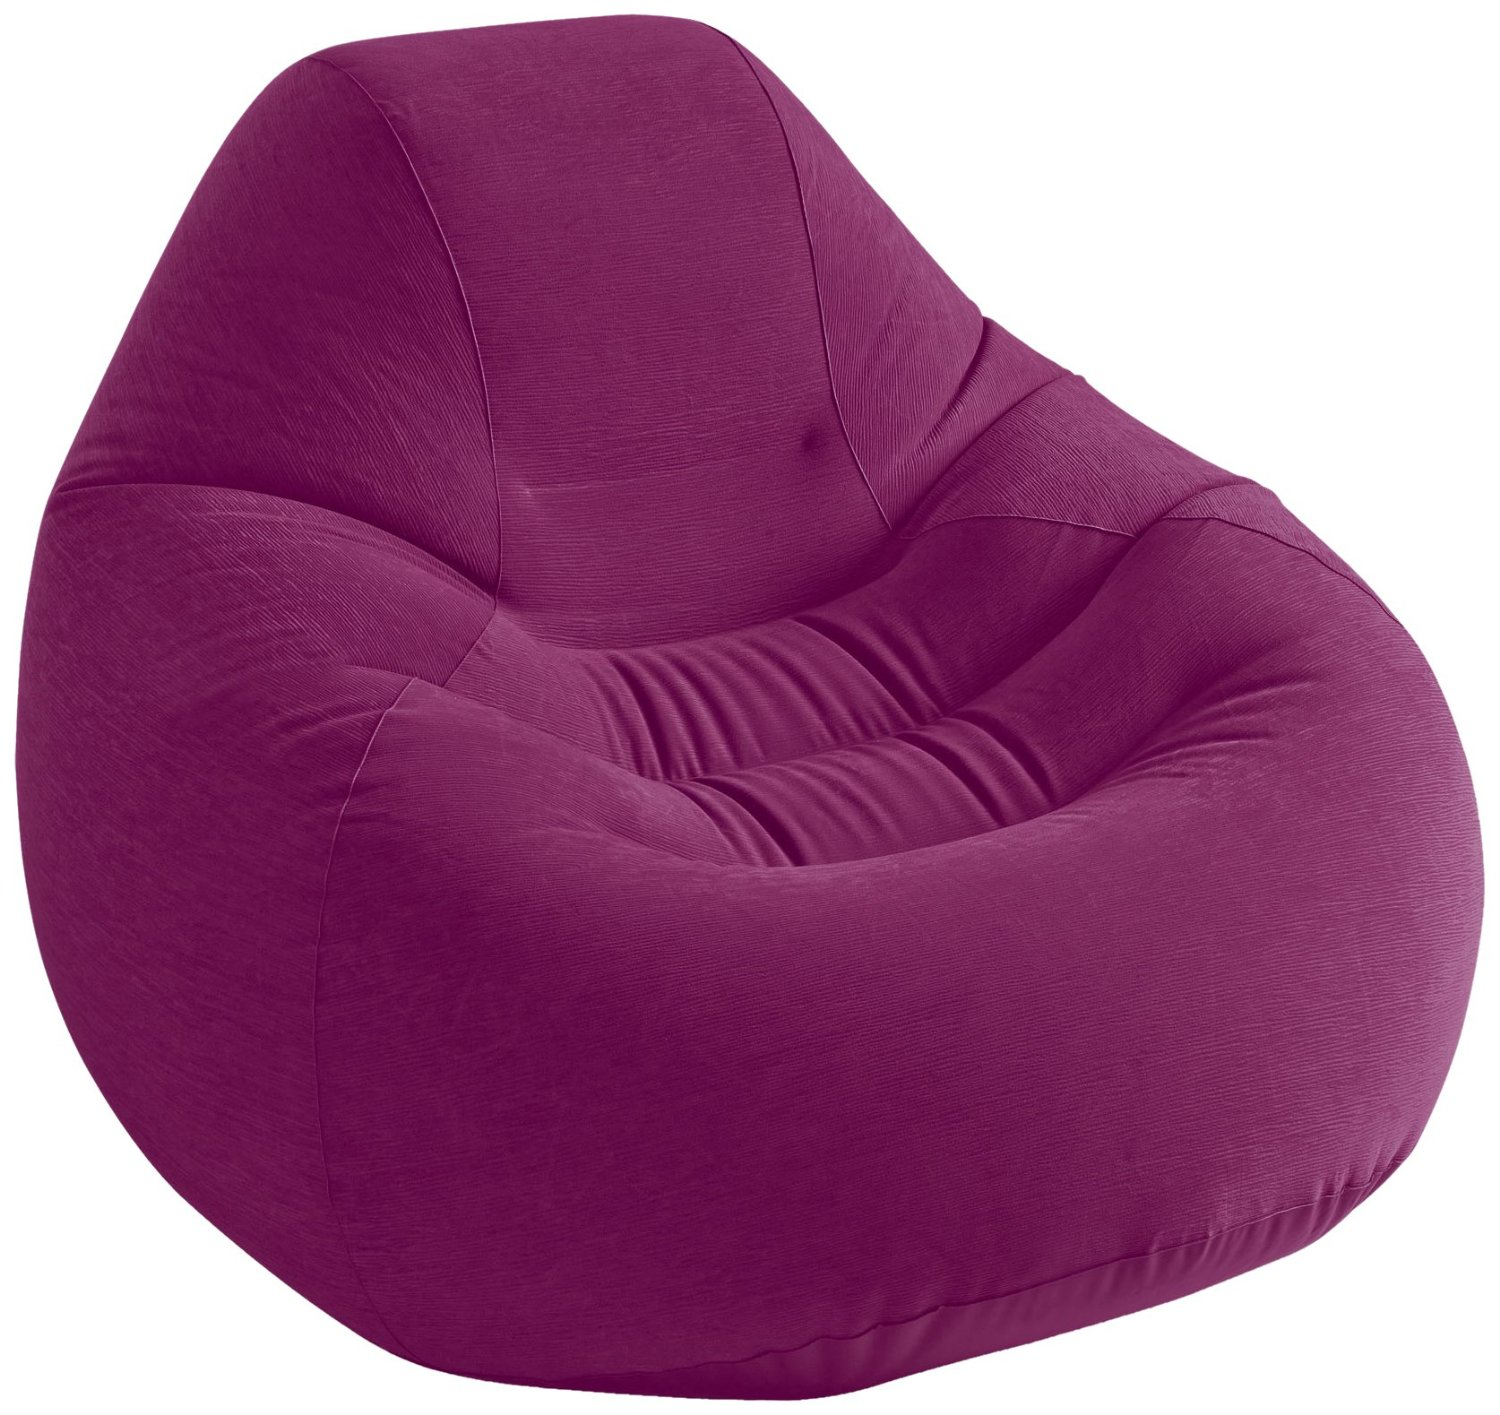 "Intex Deluxe Beanless Bag Inflatable Chair, 48"" X 50"" X 32"", Grape"